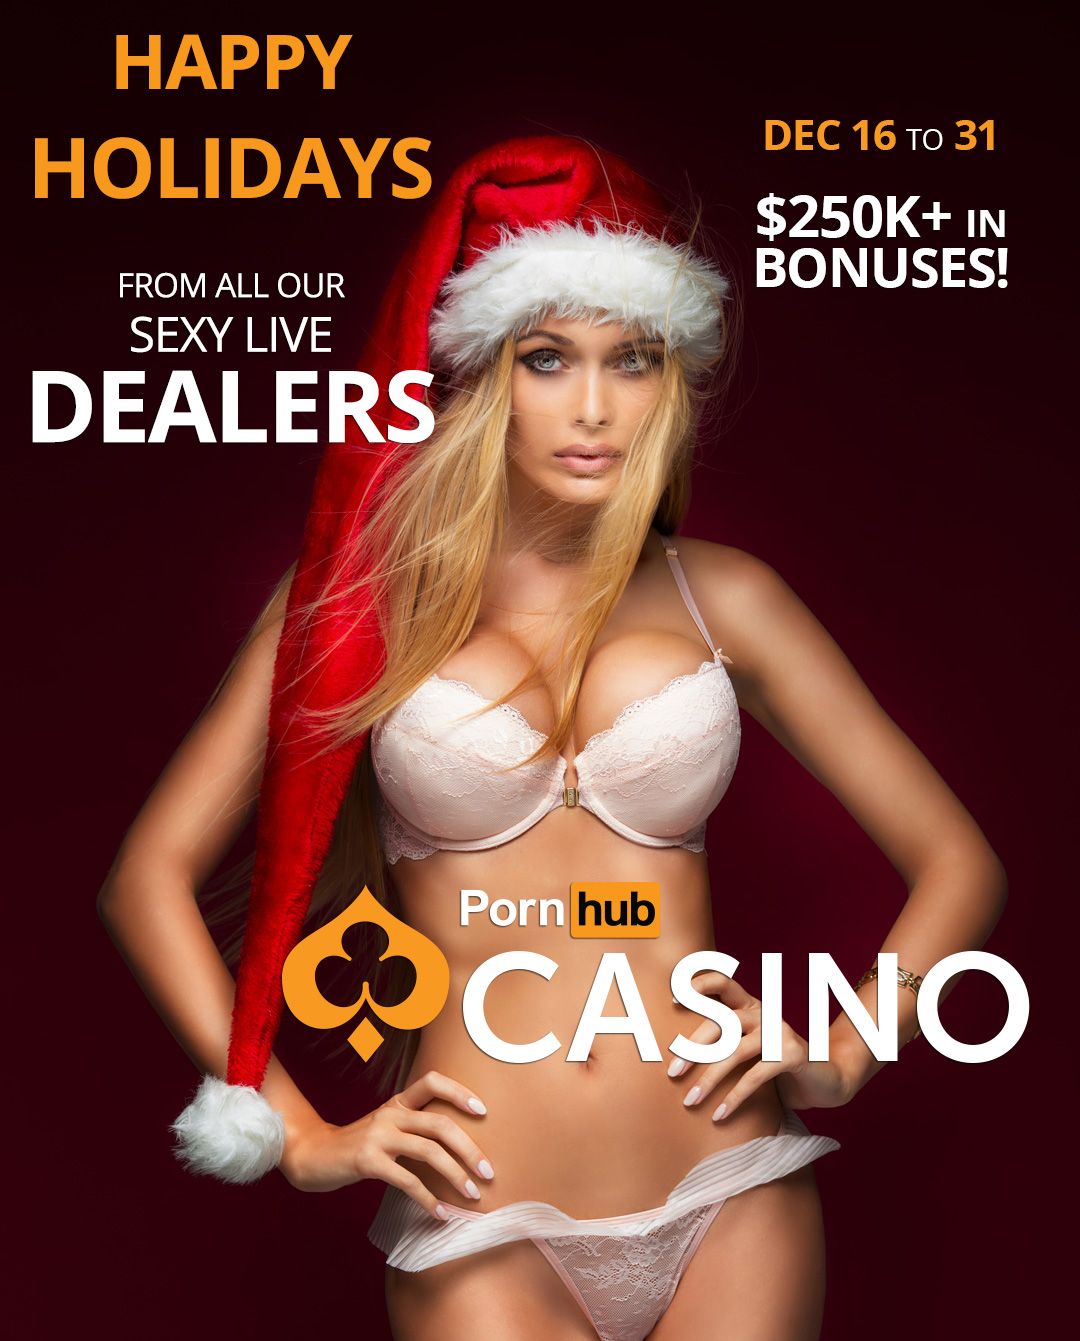 pornhubcasino-happy-holidays-promo-from-all-our-sexy-live-dealers-250k-in-bonus